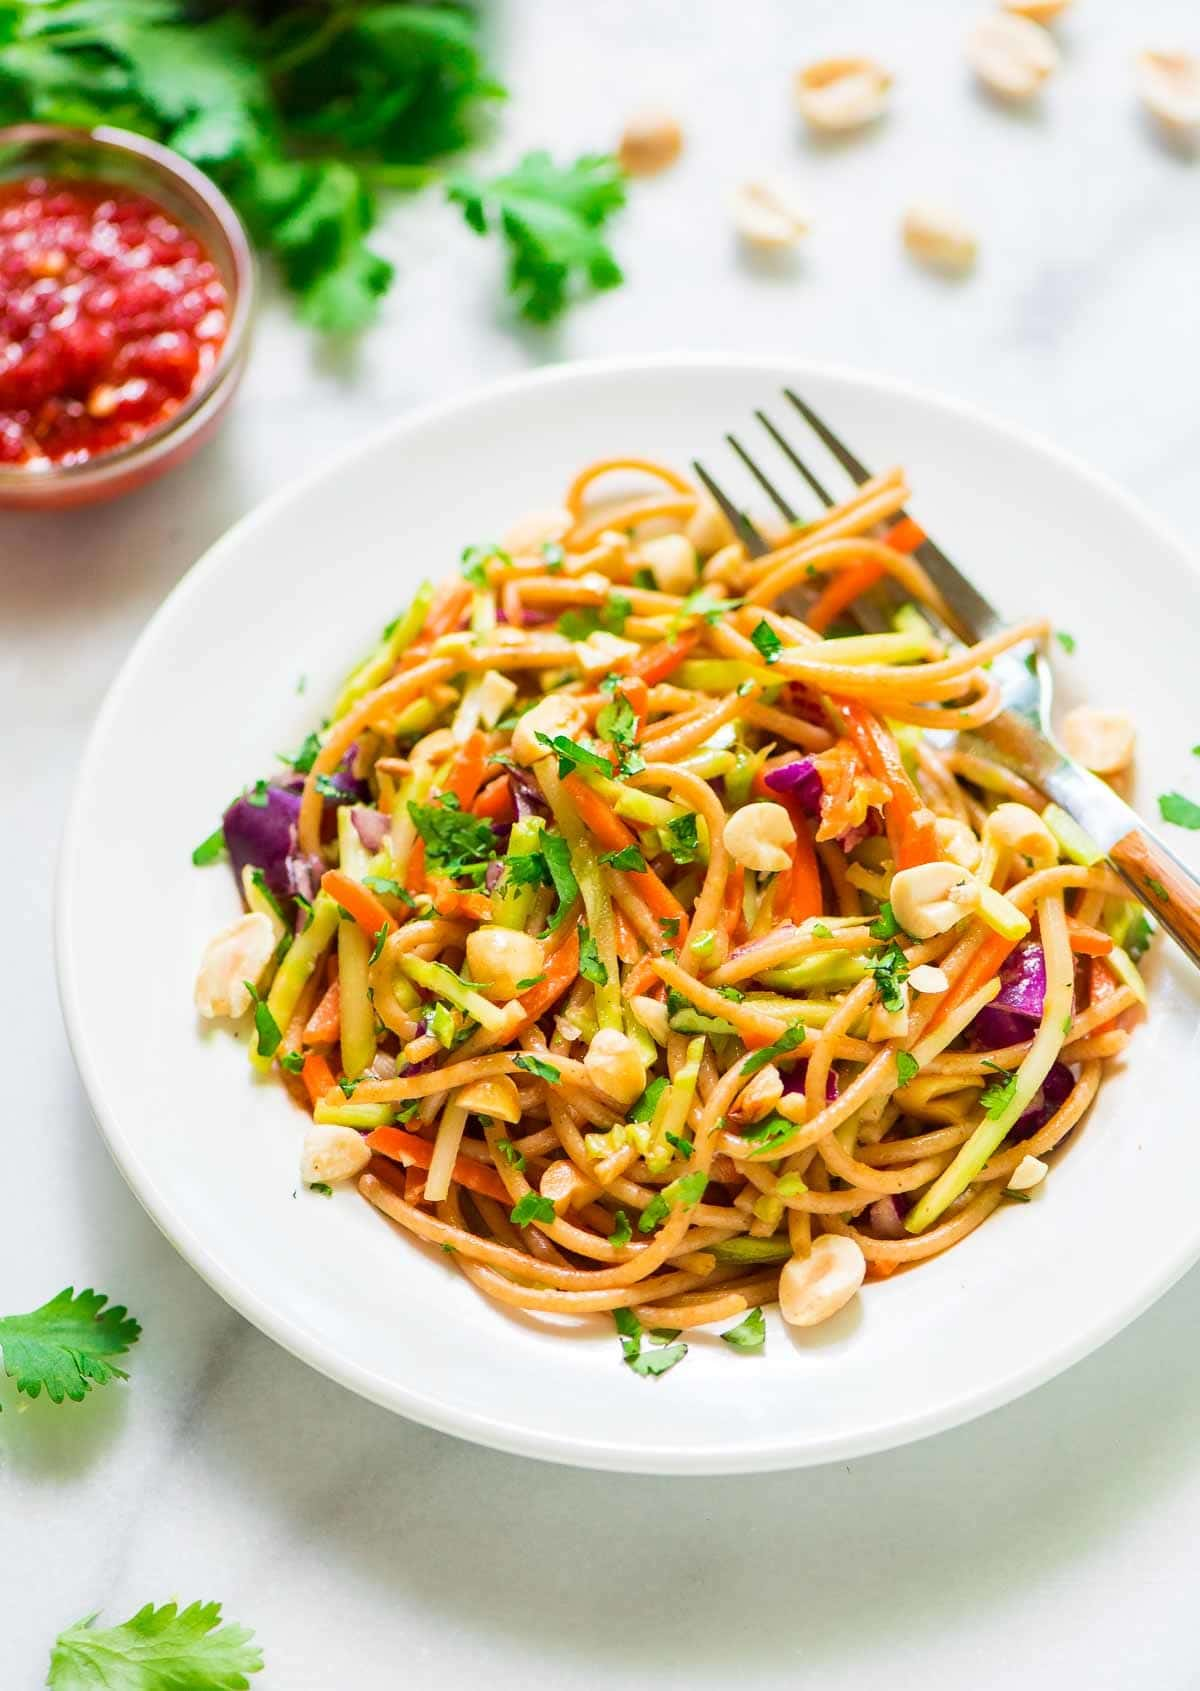 Asian Noodle Salad with Creamy Peanut Dressing | Well Plated by Erin